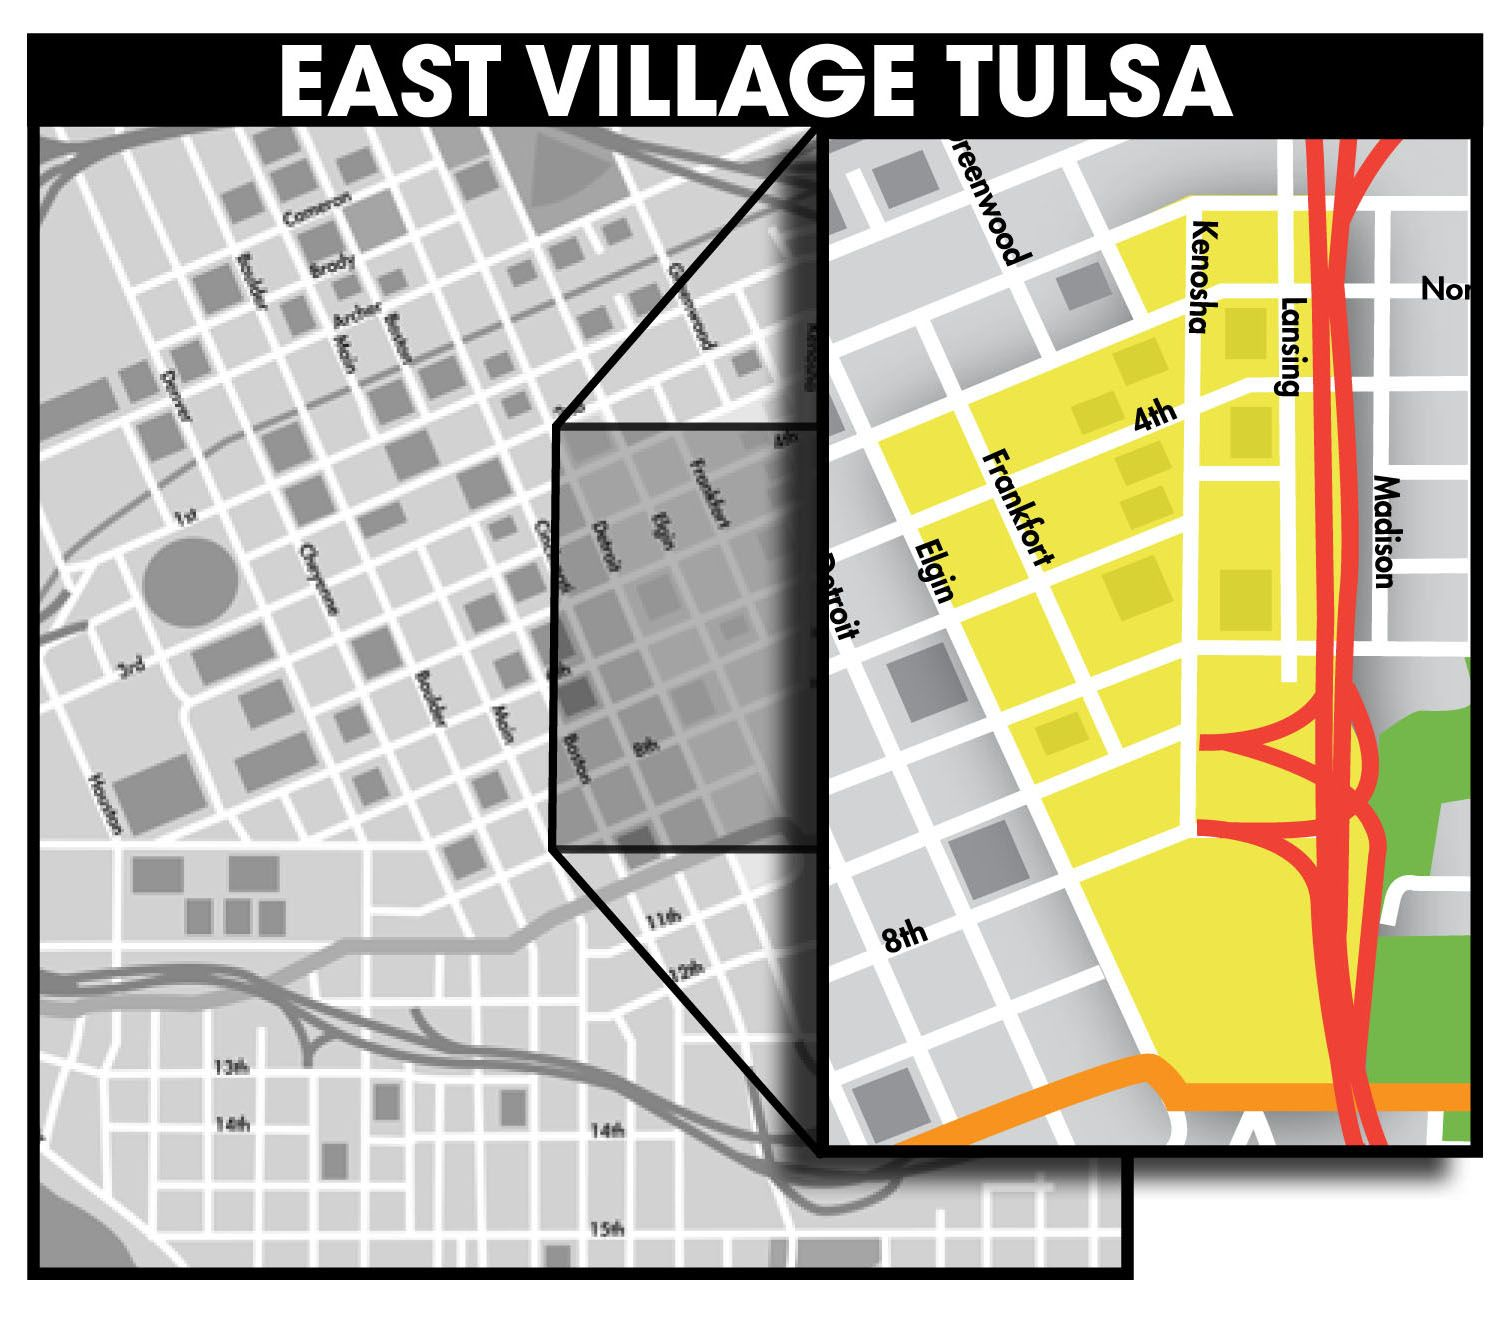 East village boundaries are approximately from 11th street